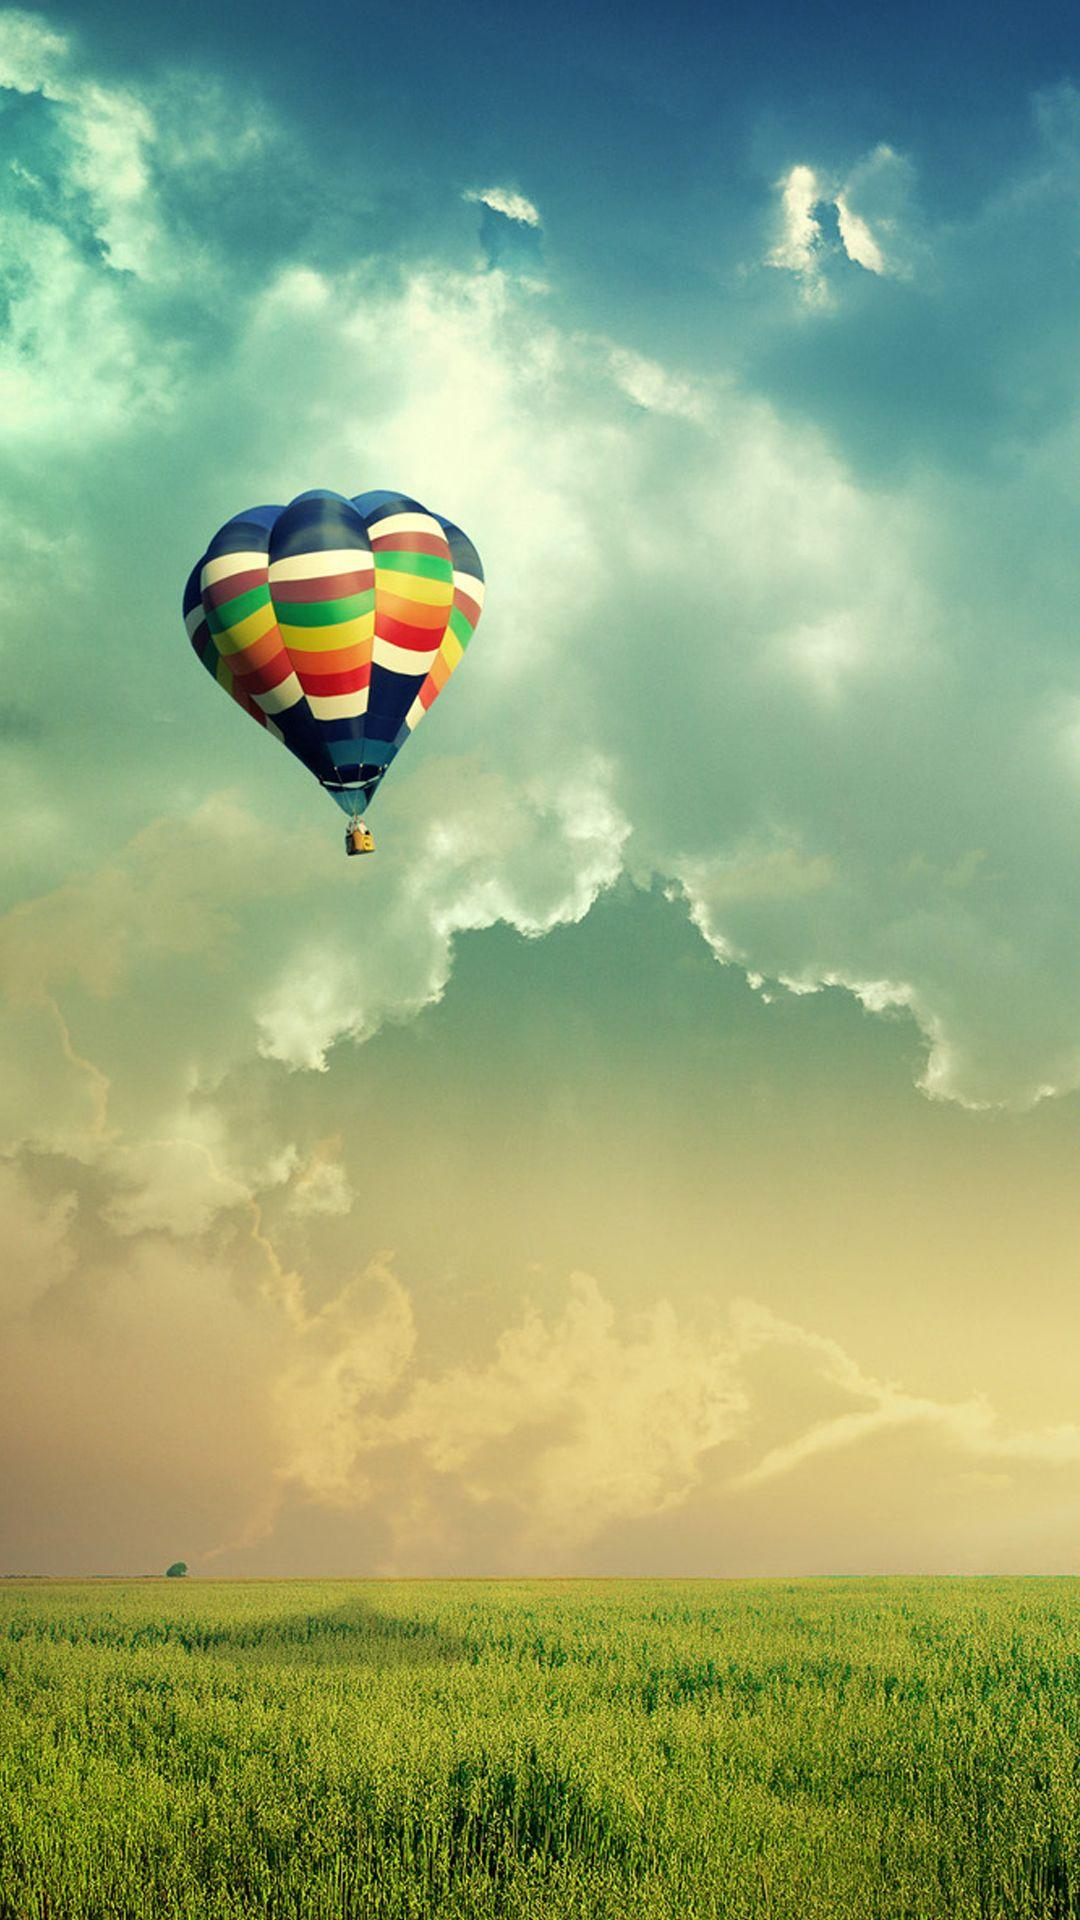 Hot Air Baloon Smartphone HD Wallpapers ⋆ GetPhotos